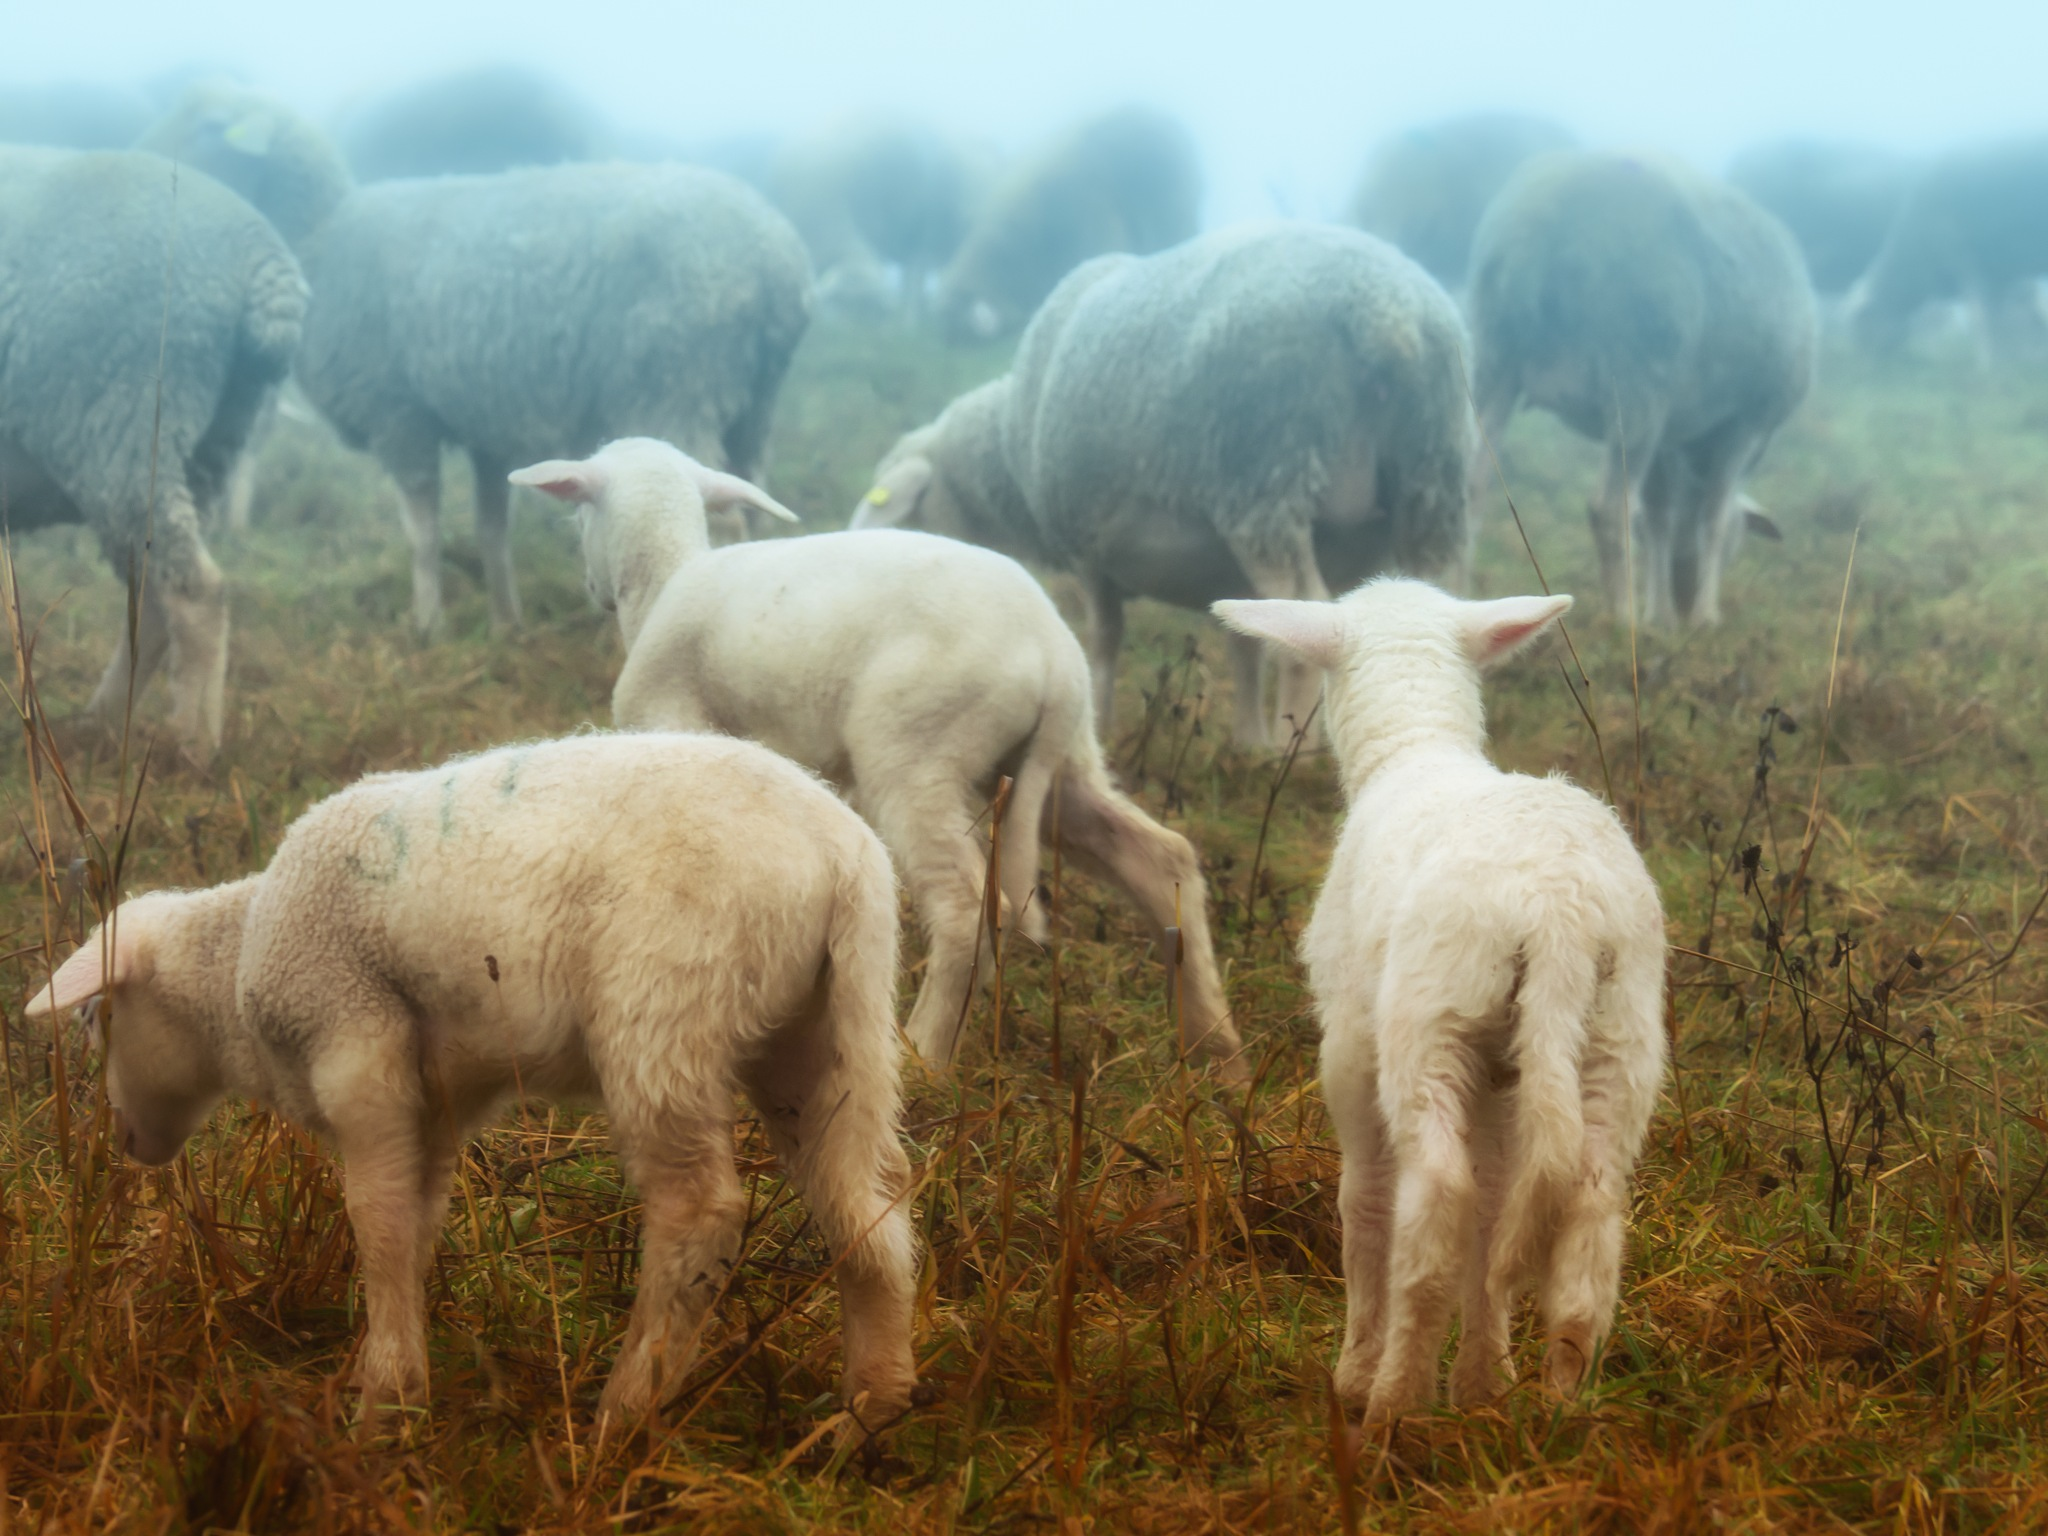 Sheeps in the fog by pixer